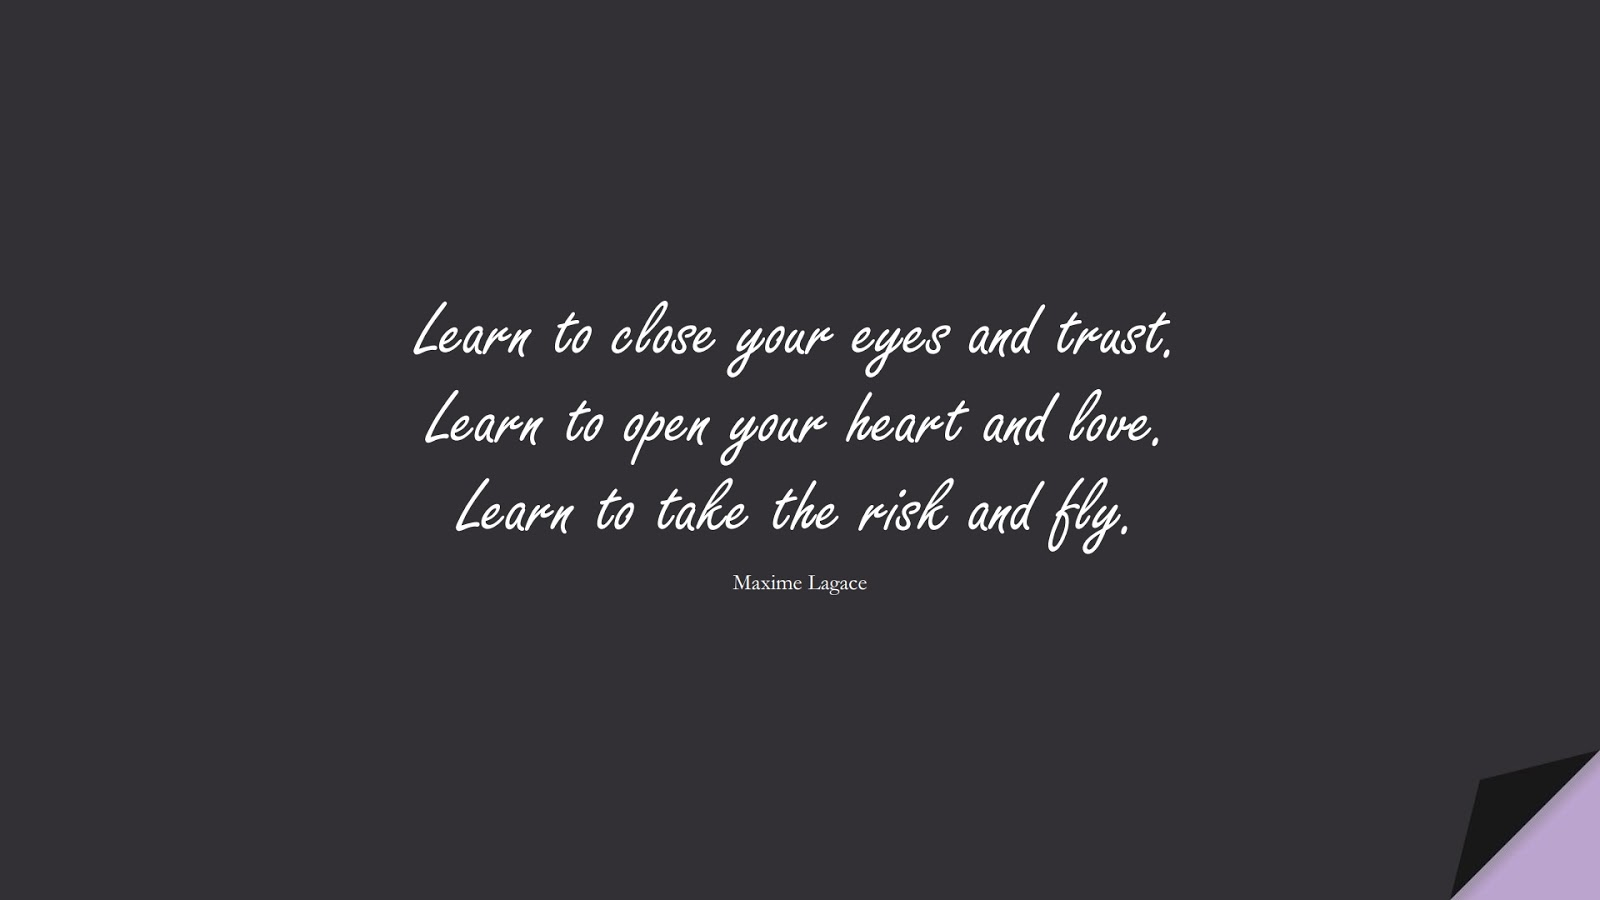 Learn to close your eyes and trust. Learn to open your heart and love. Learn to take the risk and fly. (Maxime Lagace);  #HopeQuotes